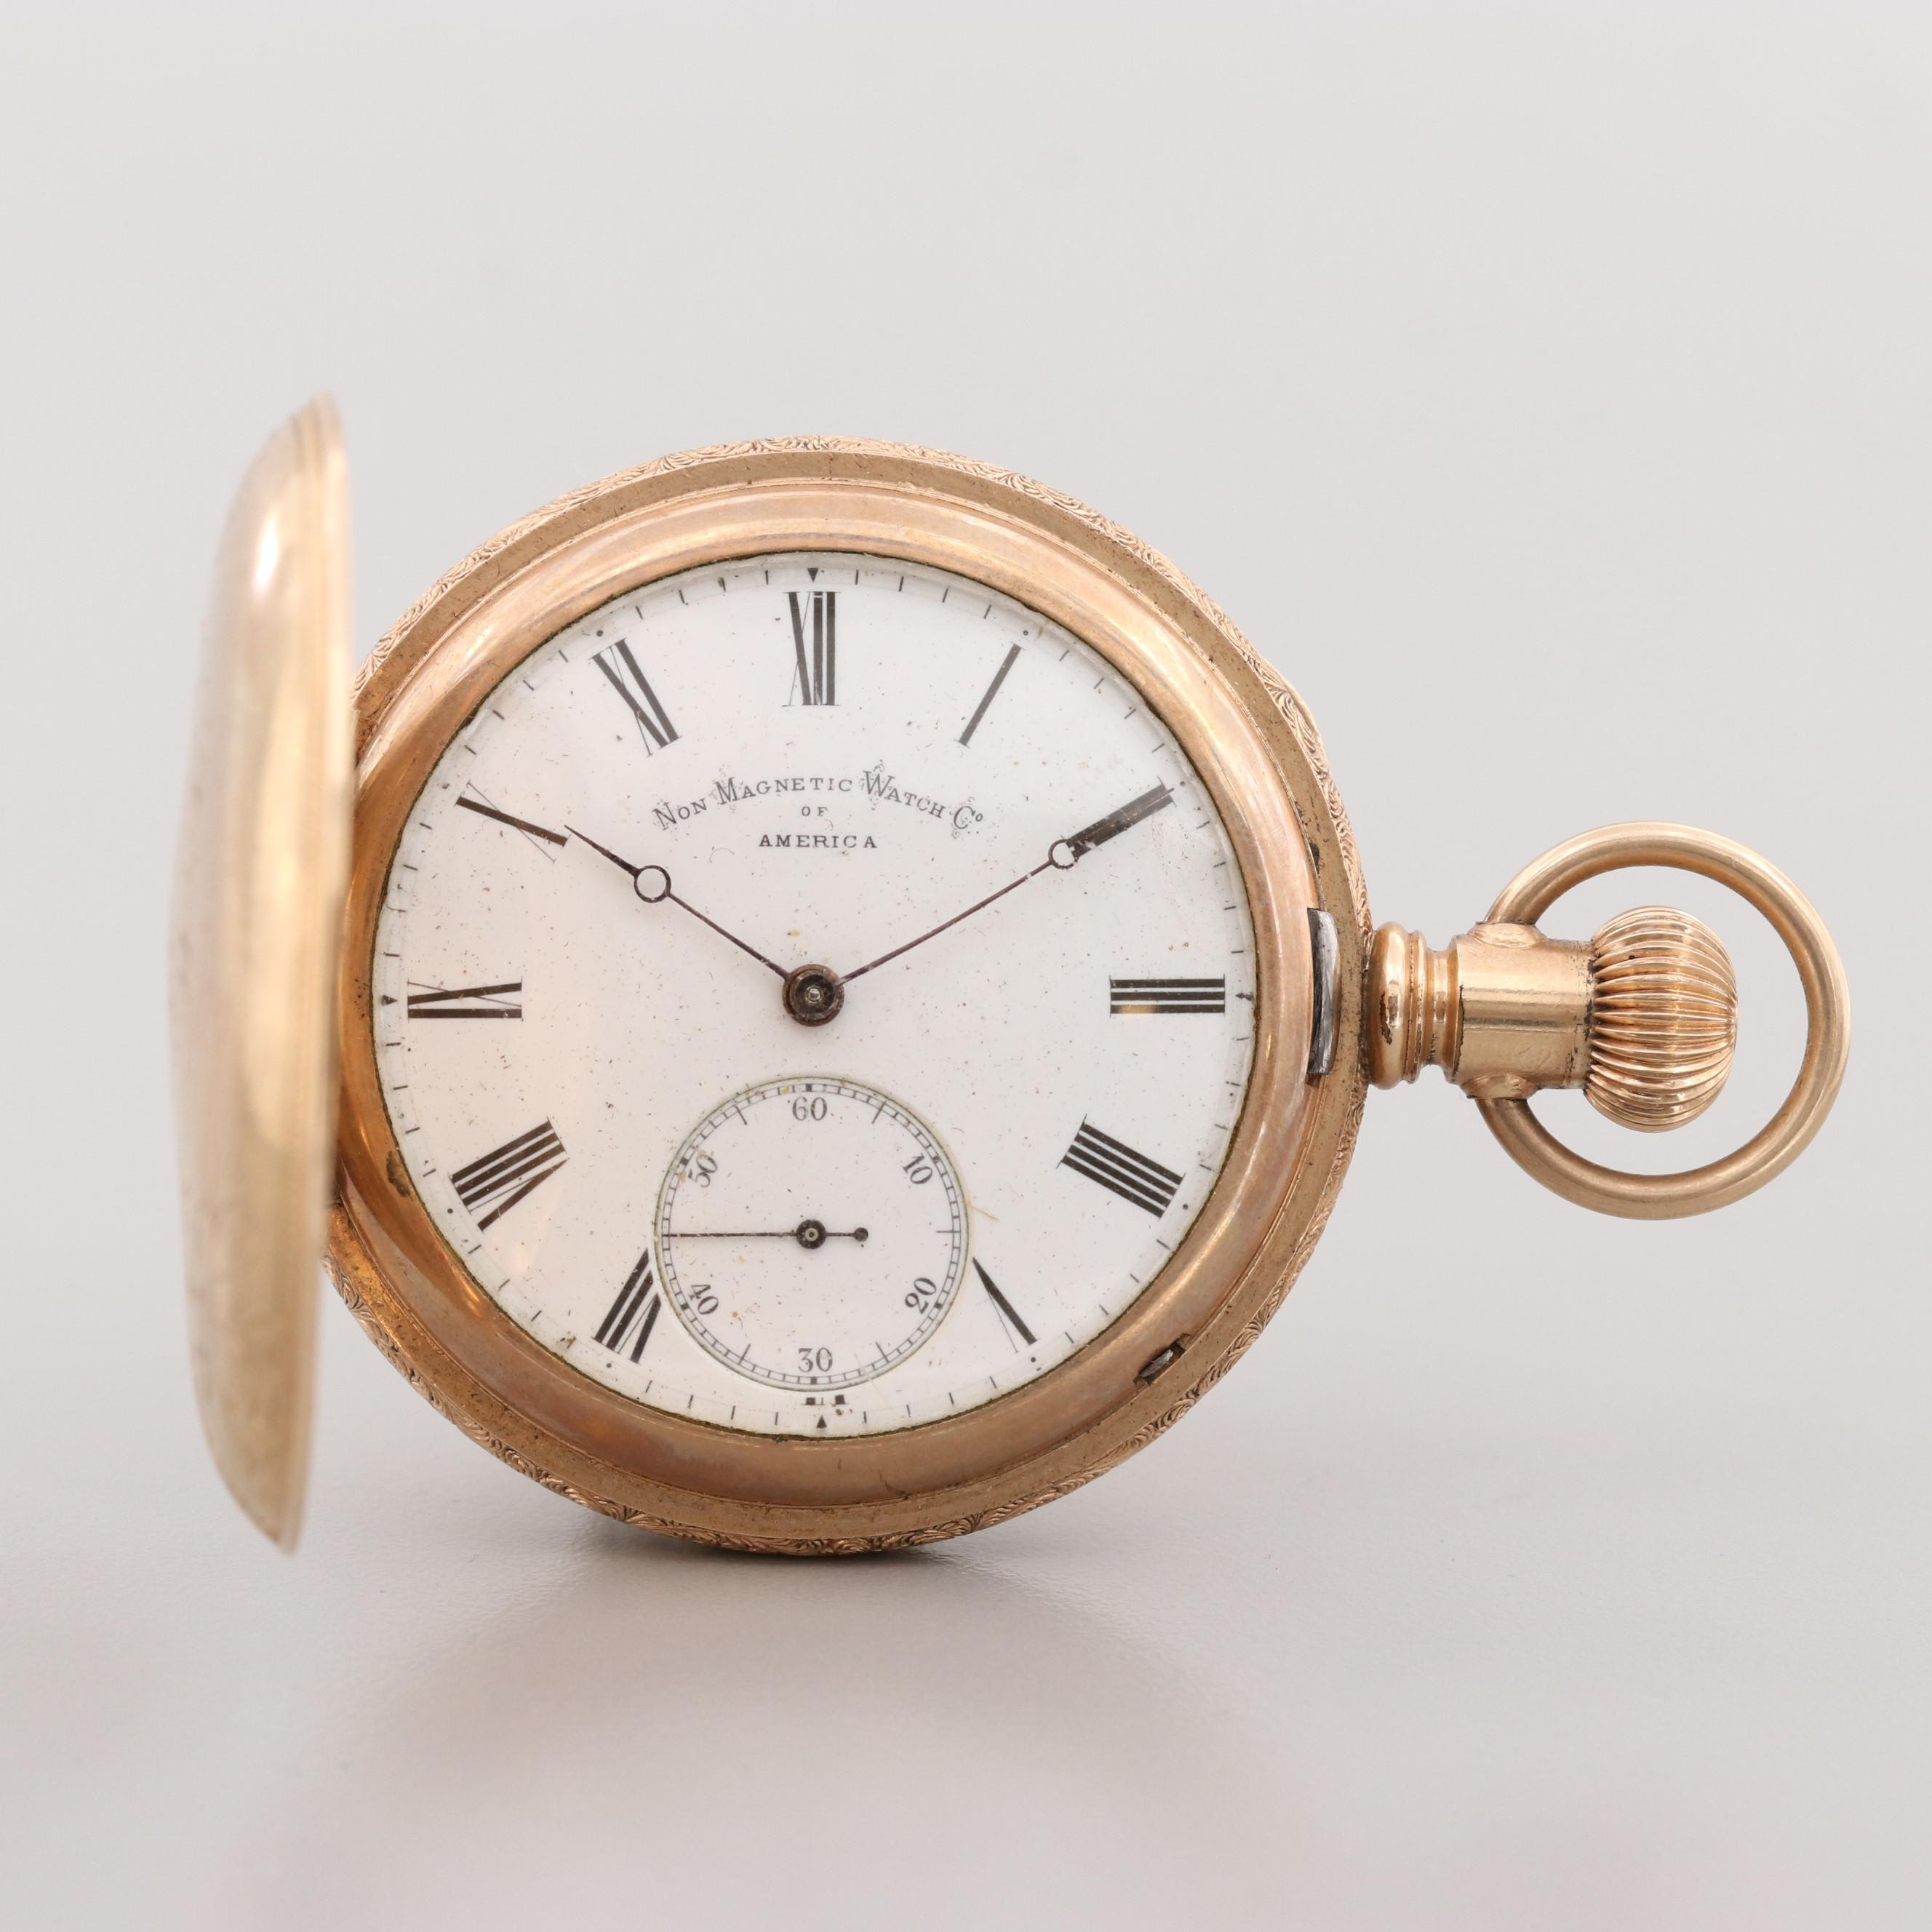 Antique Non Magnetic Watch Co. of America Pocket Watch